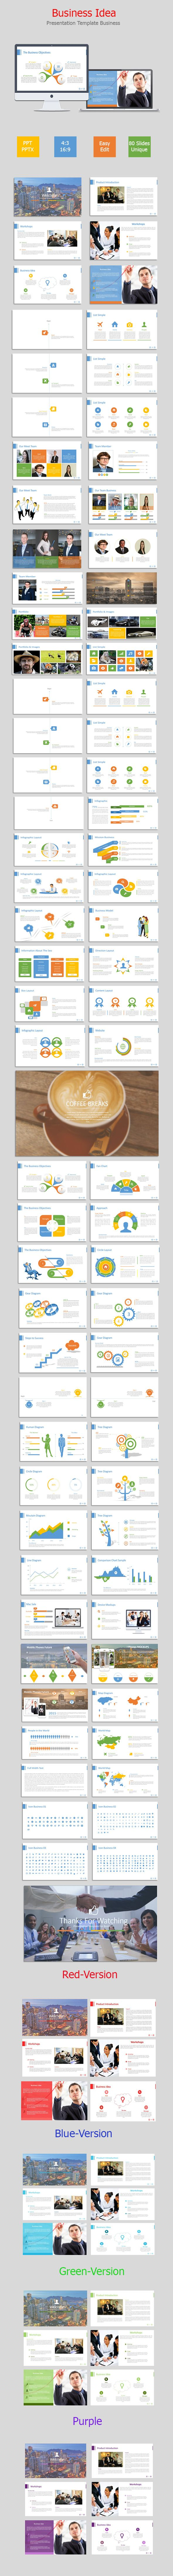 Business Idea PowerPoint Presentation Template #design #slides #powerpoint Download: http://graphicriver.net/item/business-idea/11418209?ref=ksioks